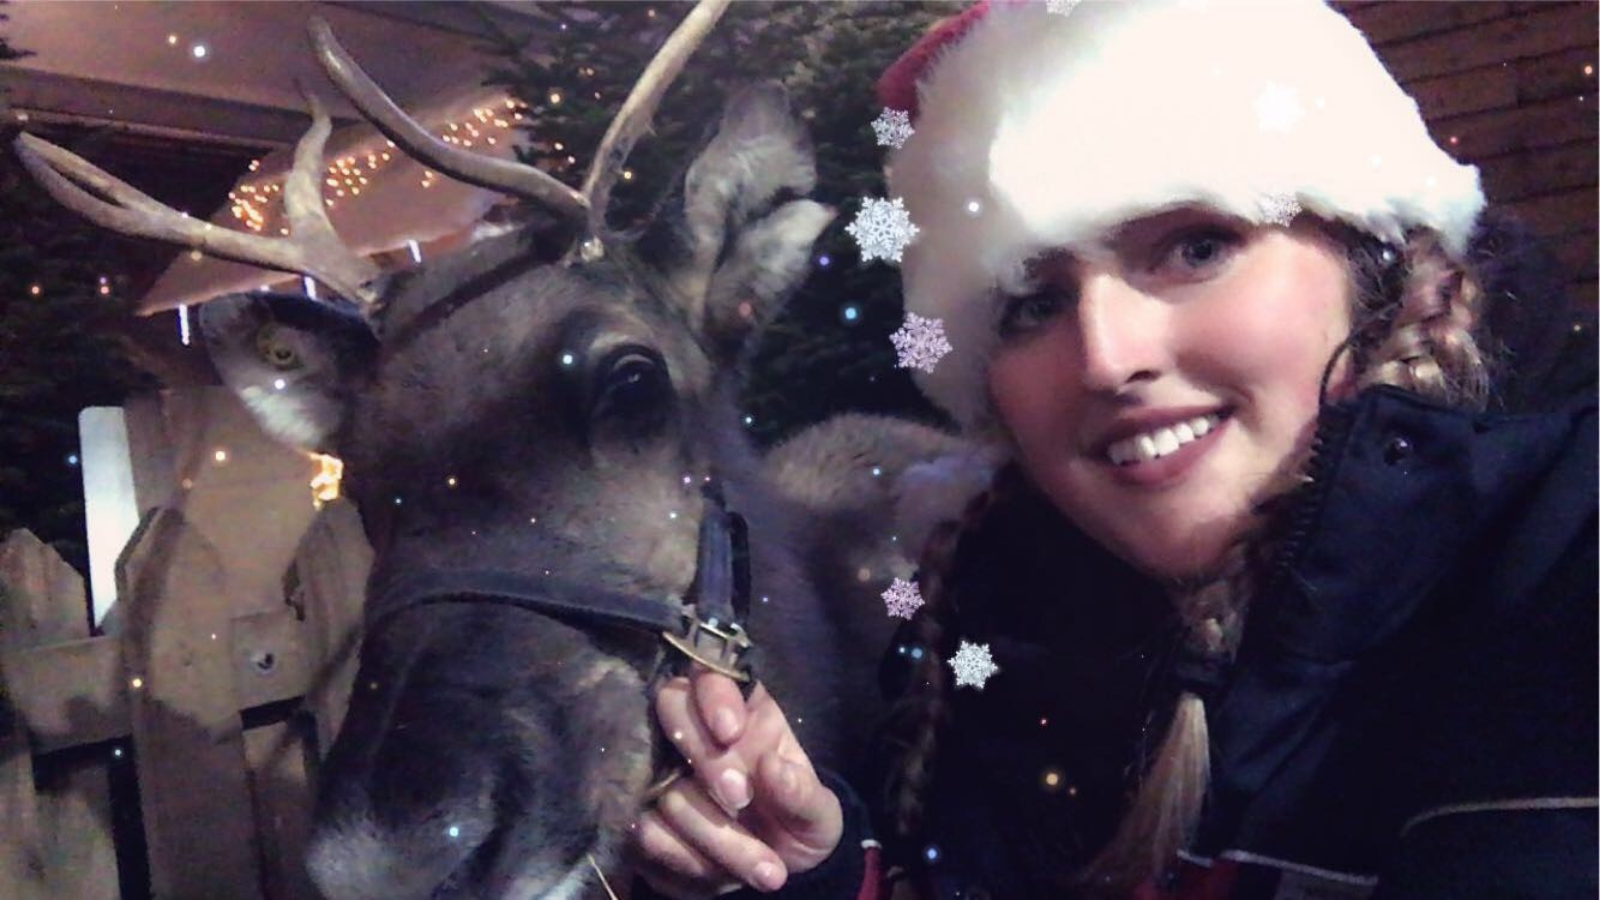 Reindeer herder hopes Muddy Matches can play Cupid